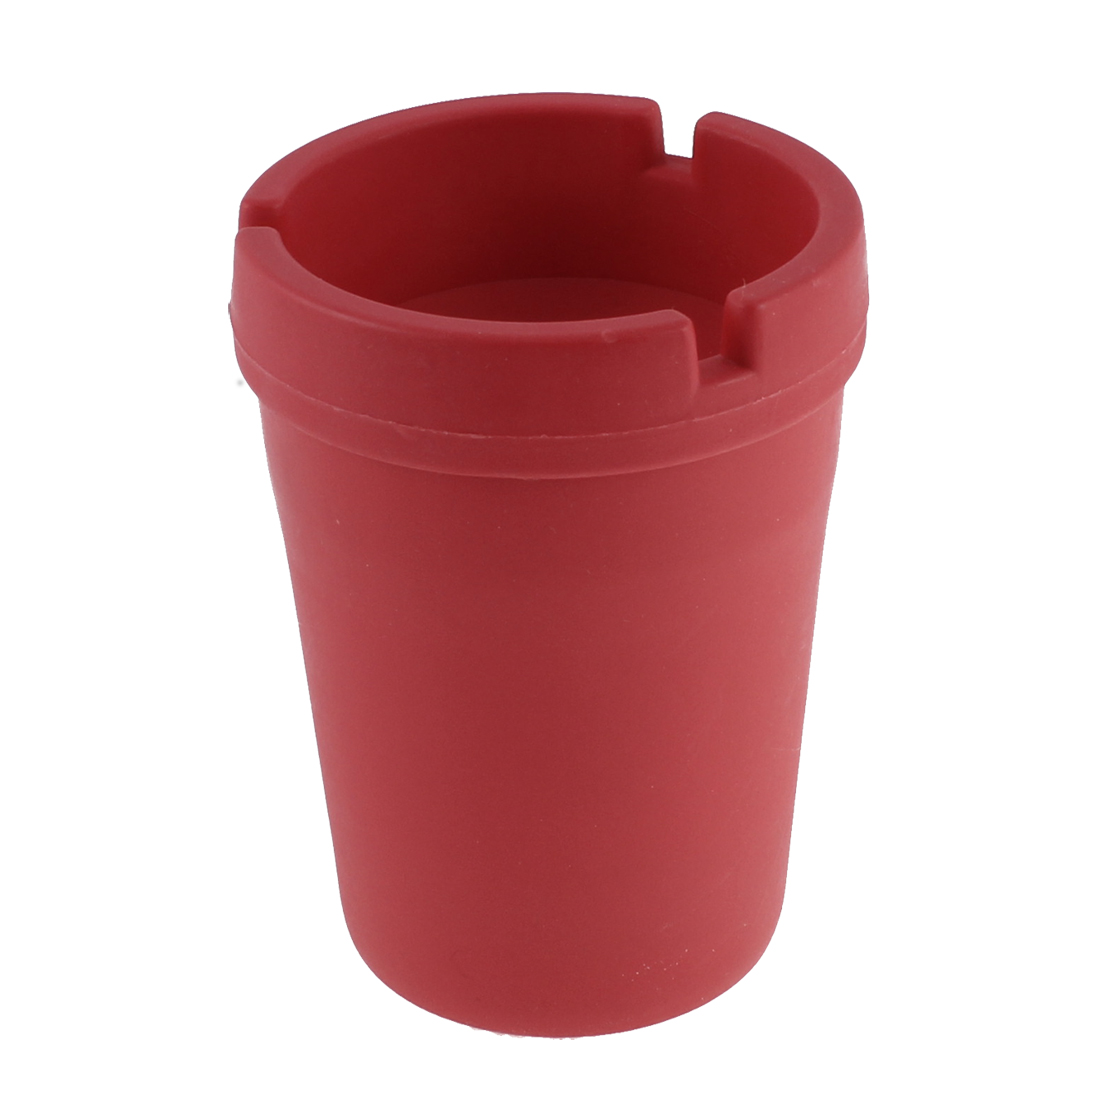 Outdoor Auto Car Extinguishing Butt Bucket Cigarette Ashtray Holder Red